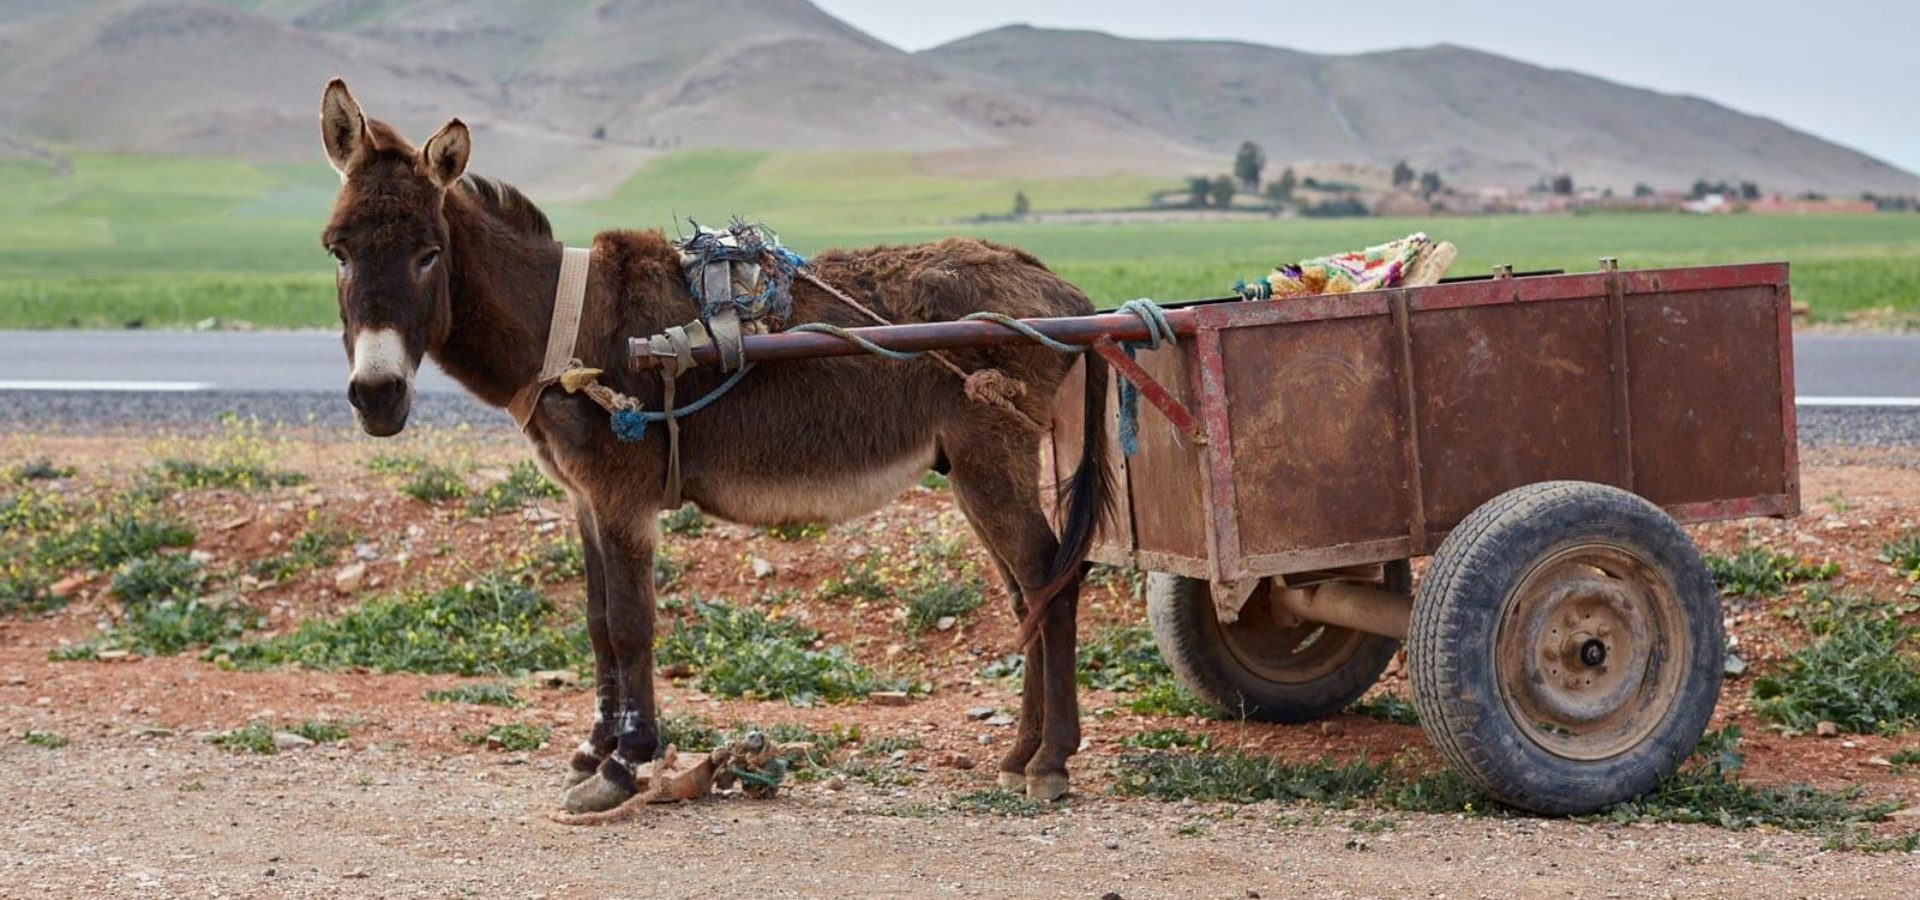 a donkey pulling a cart in morocco